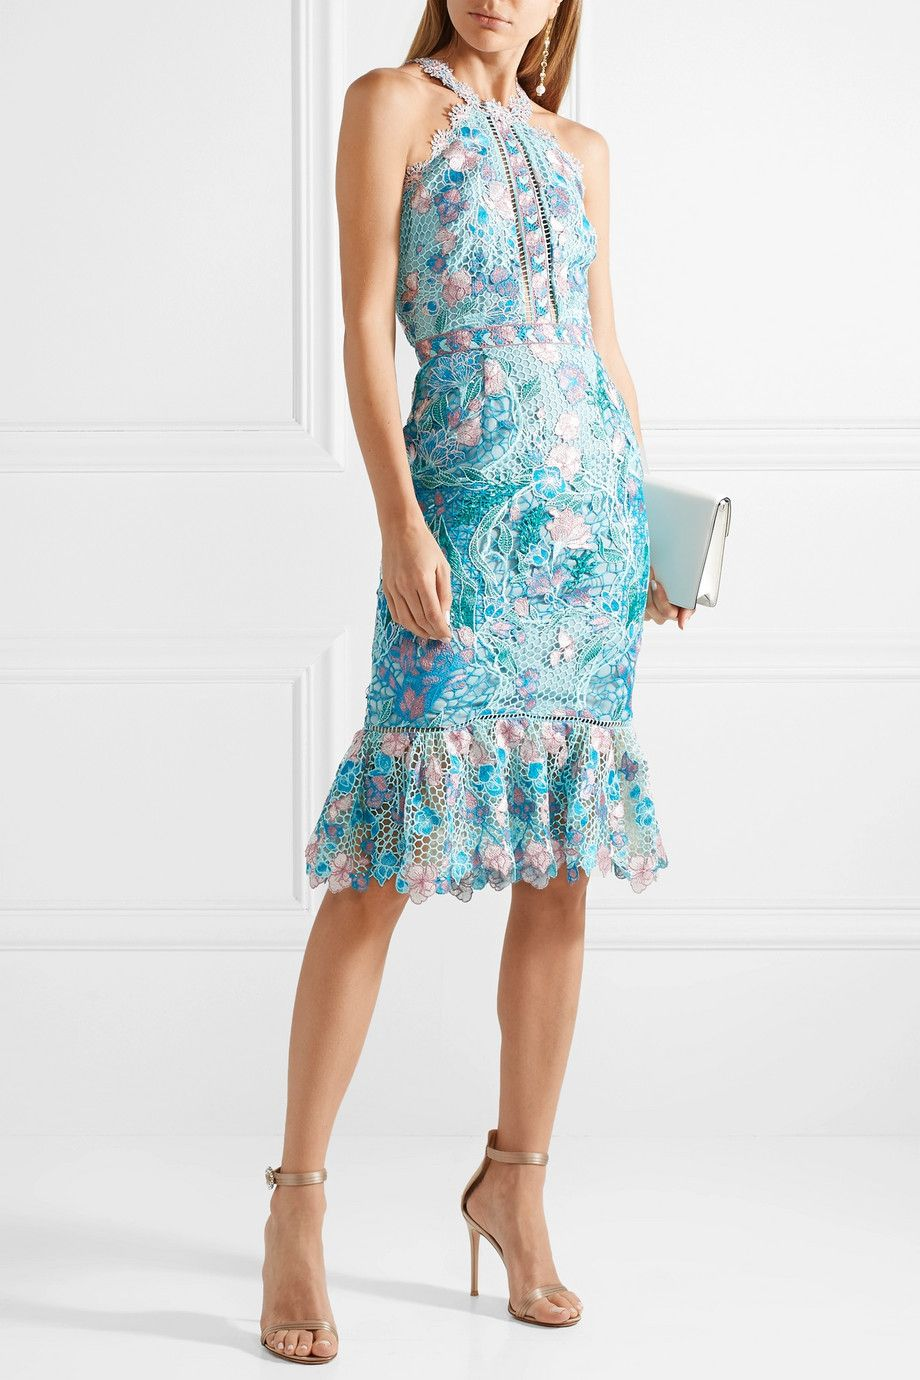 Ruffled Embroidered Guipure Lace Dress - Light blue Marchesa q8sQlGcPQR